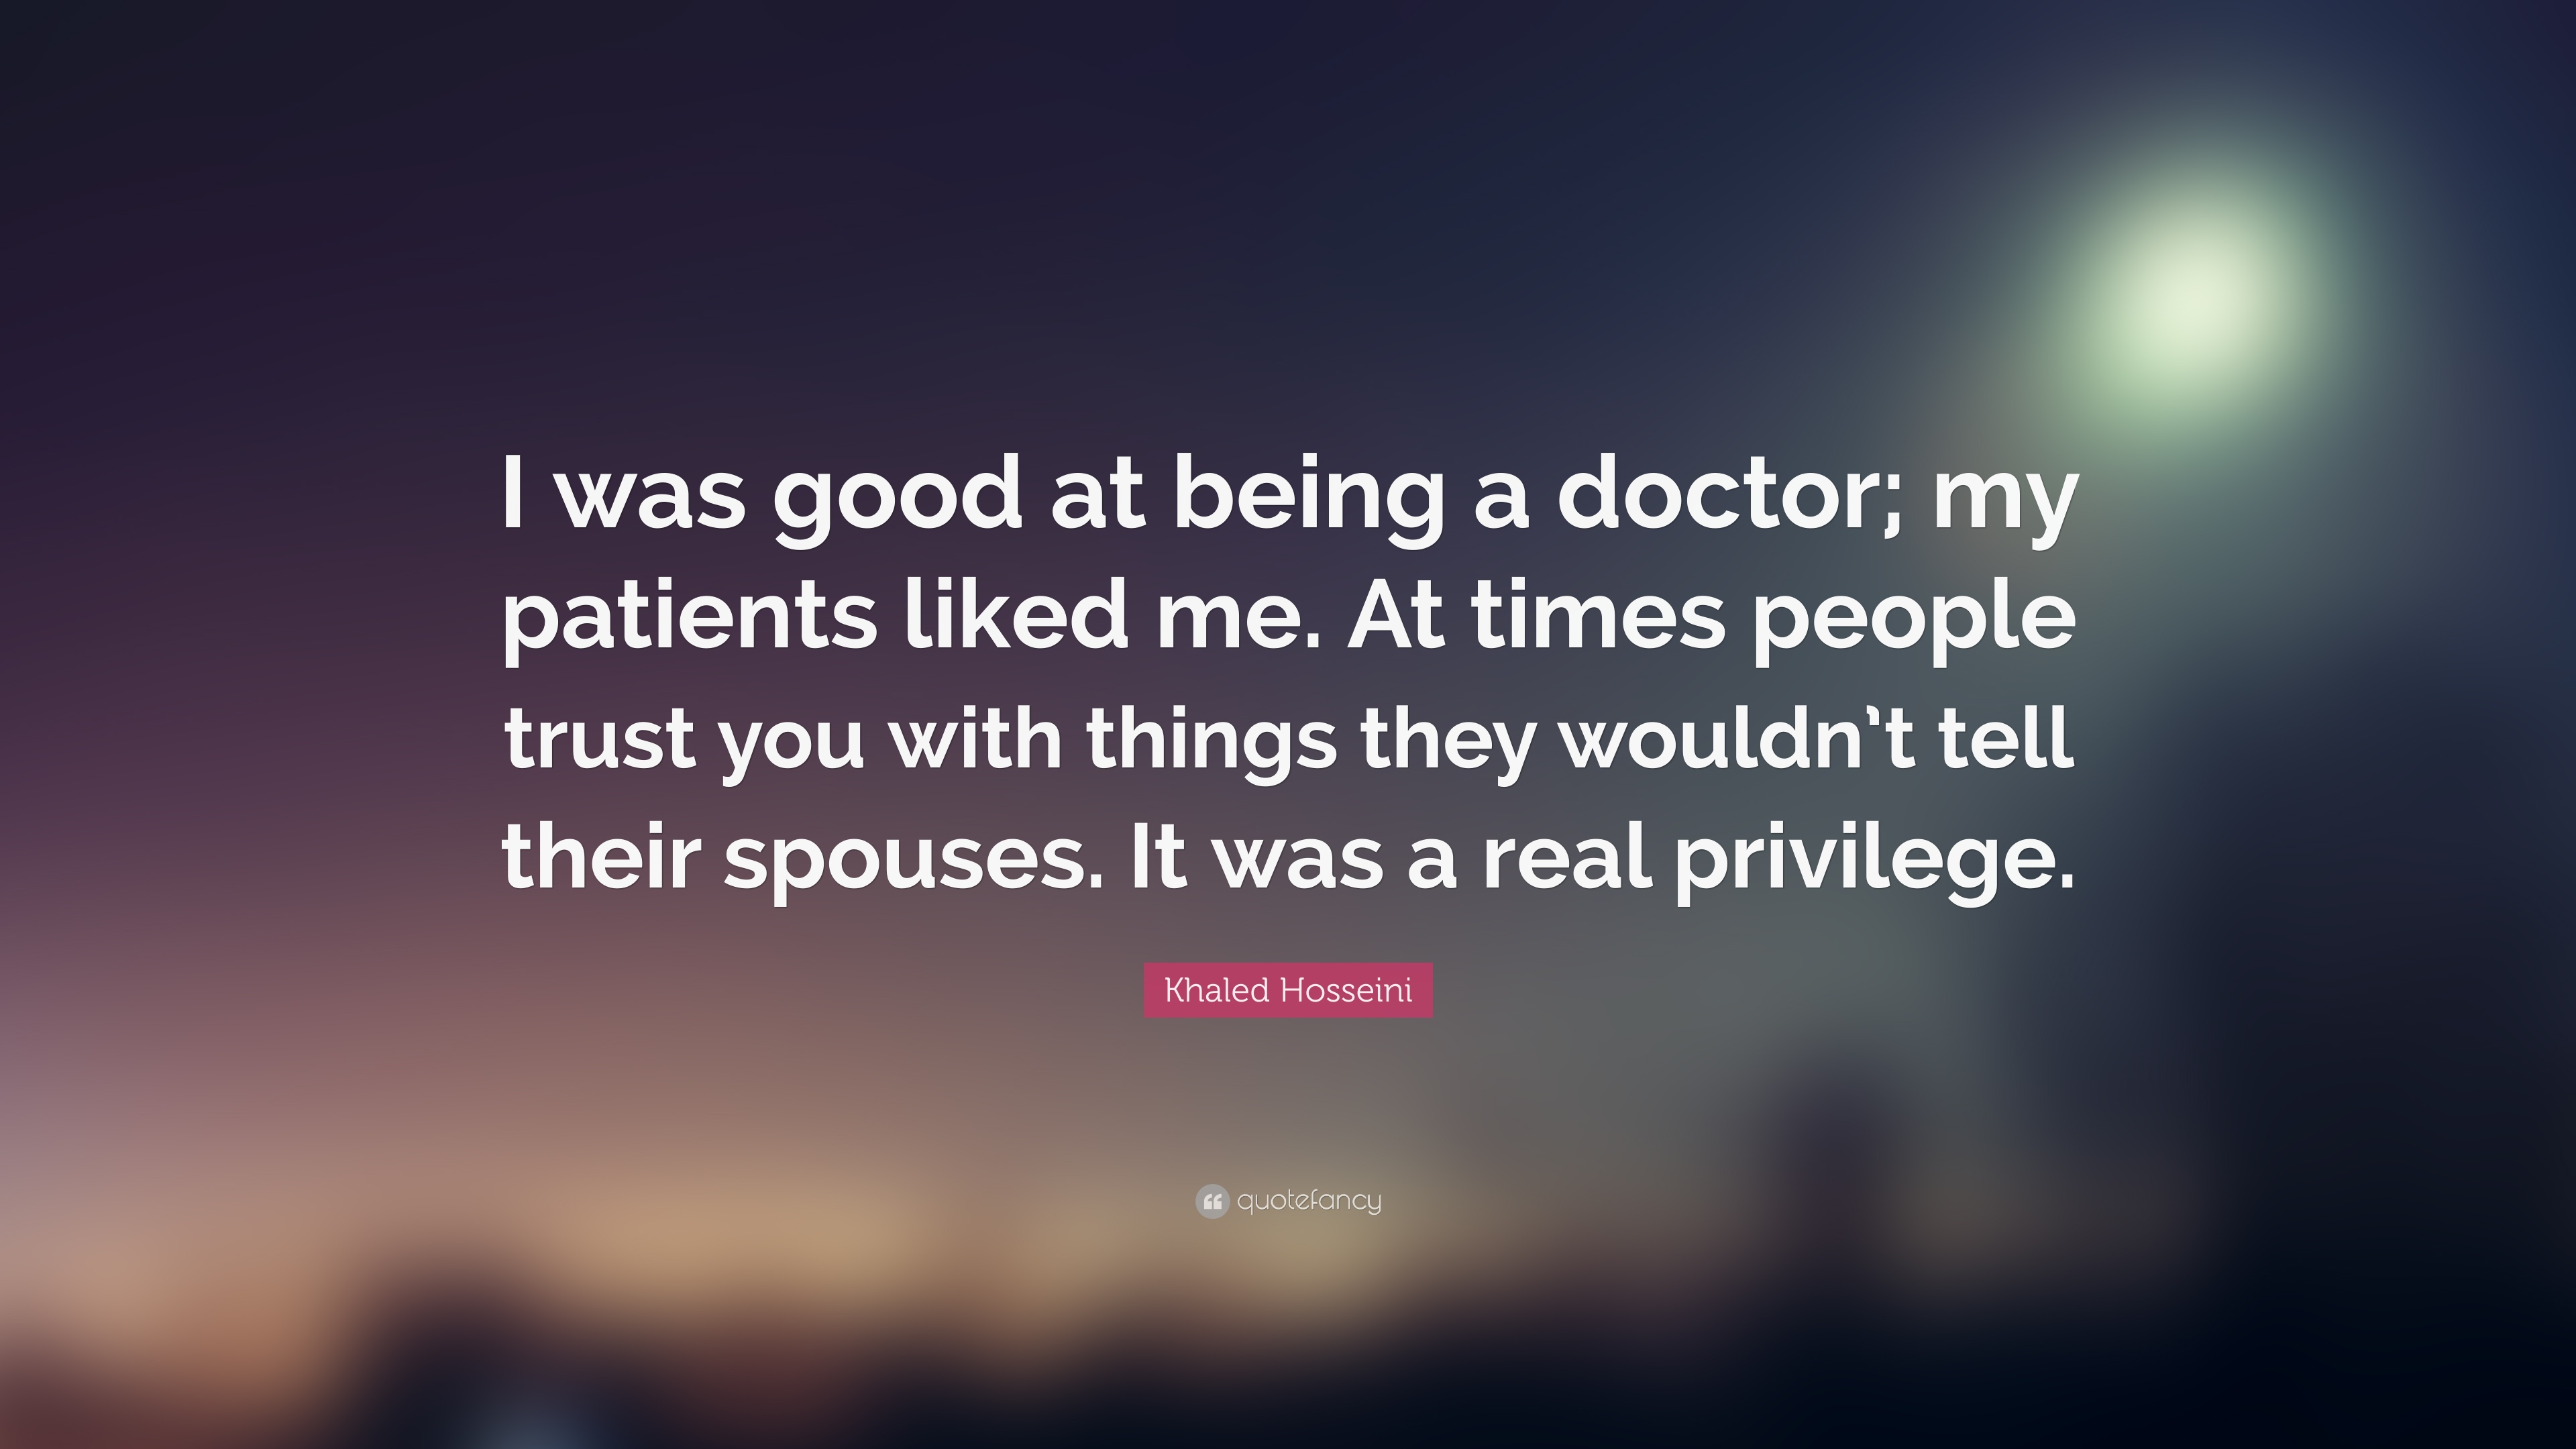 Khaled Hosseini Quote: I was good at being a doctor; my